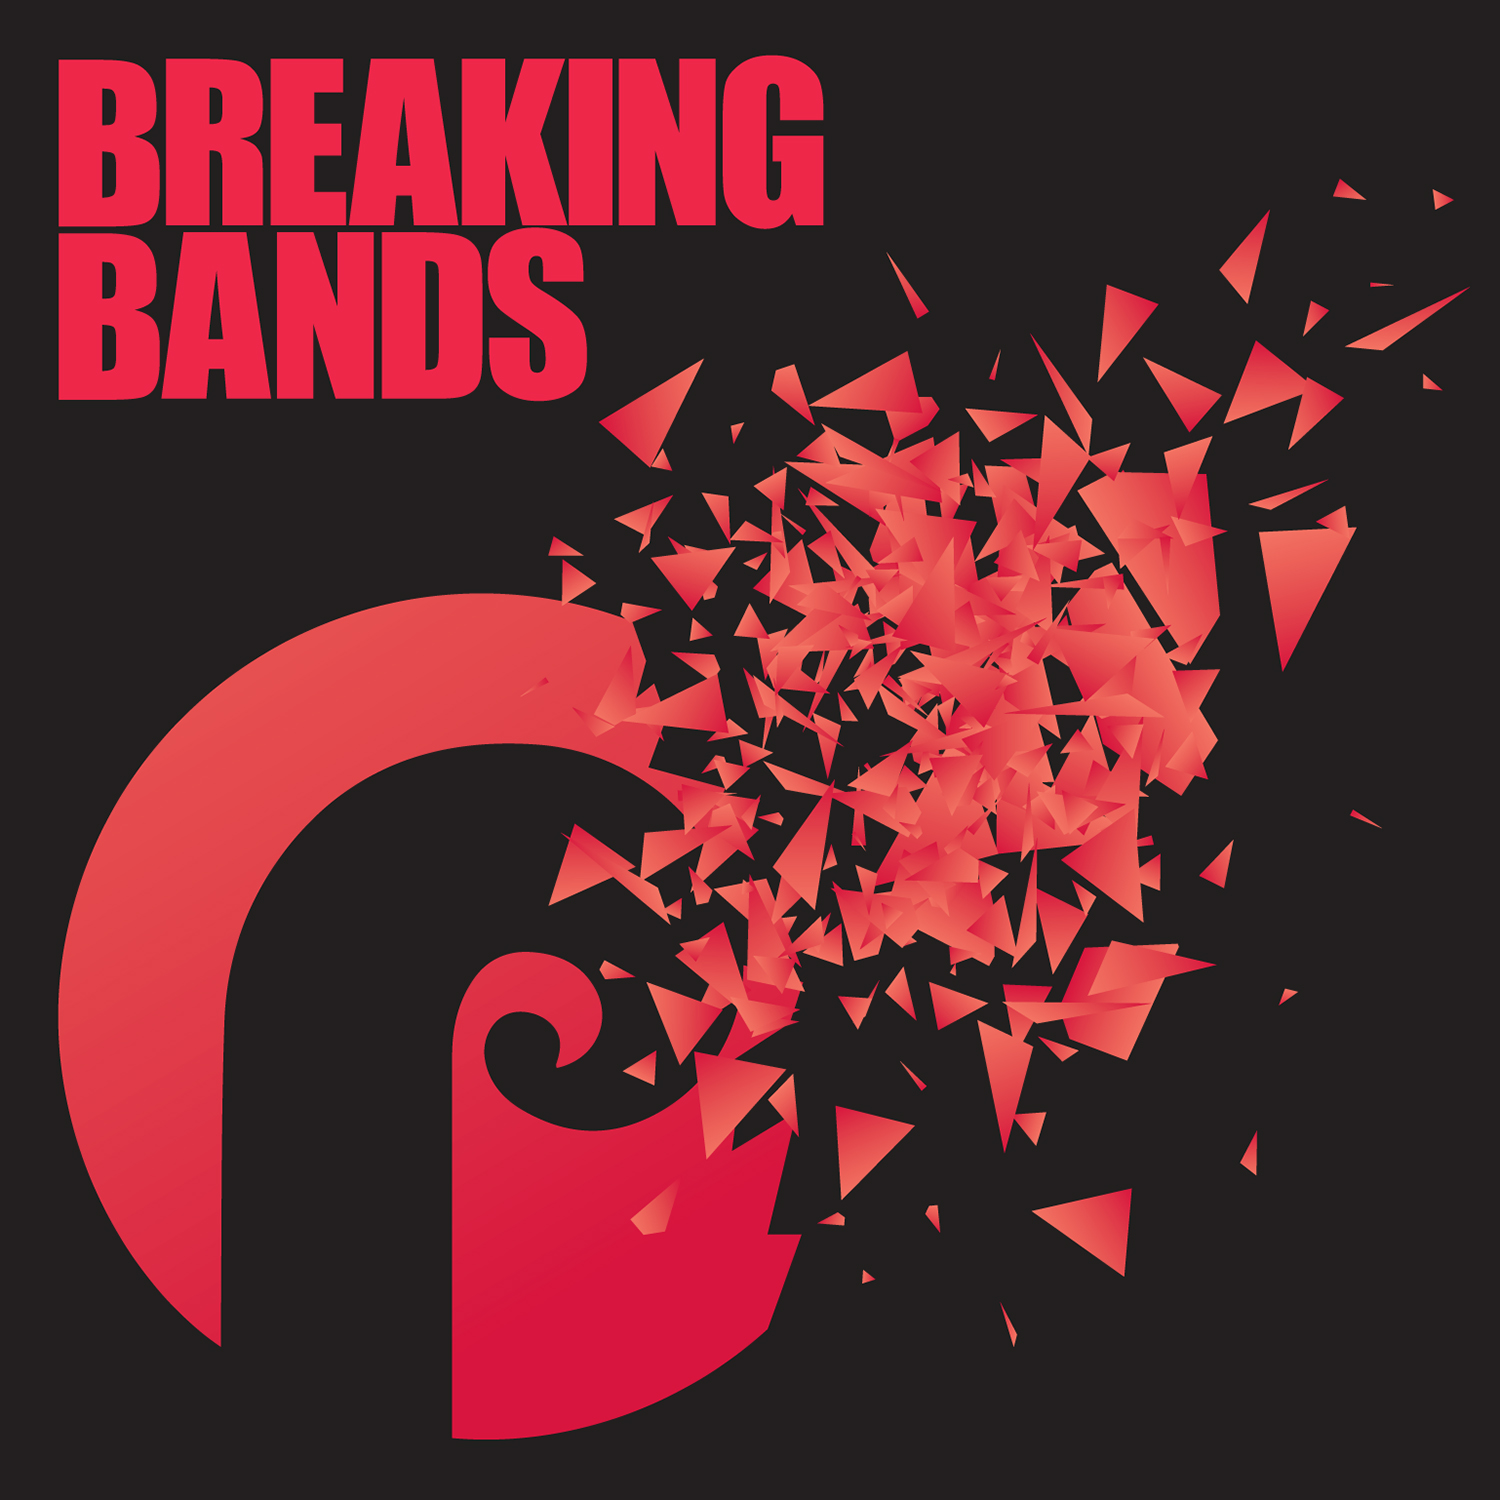 Breakable Bands: Rhiza's Breaking Bands Now On British Airways